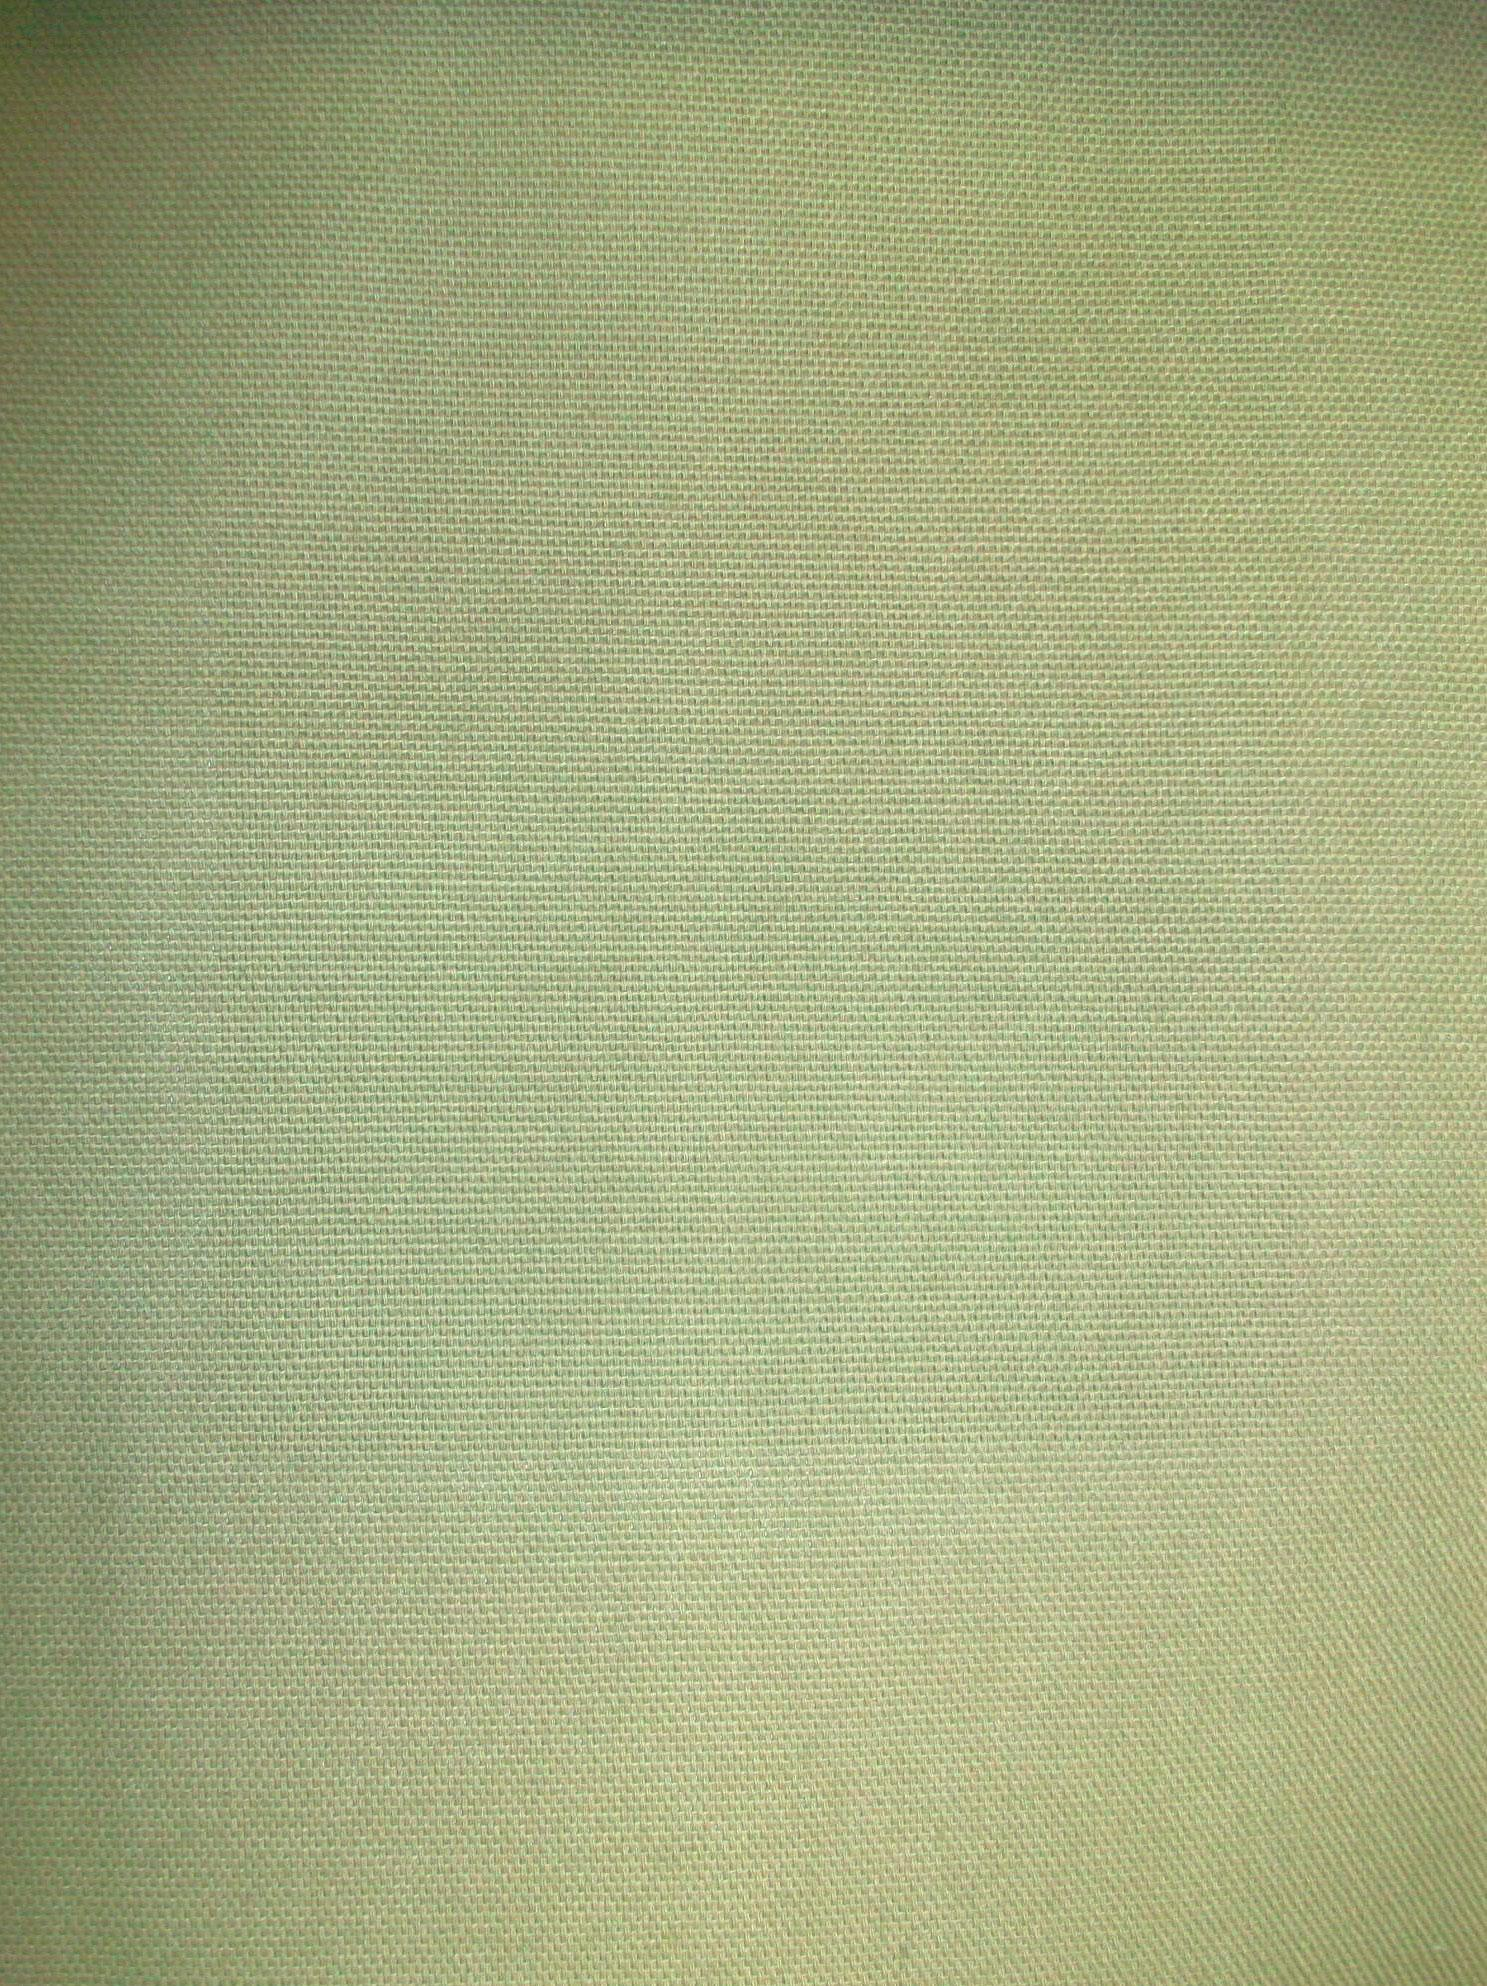 Wesco fabrics wes piper sage green - What color is sage green ...